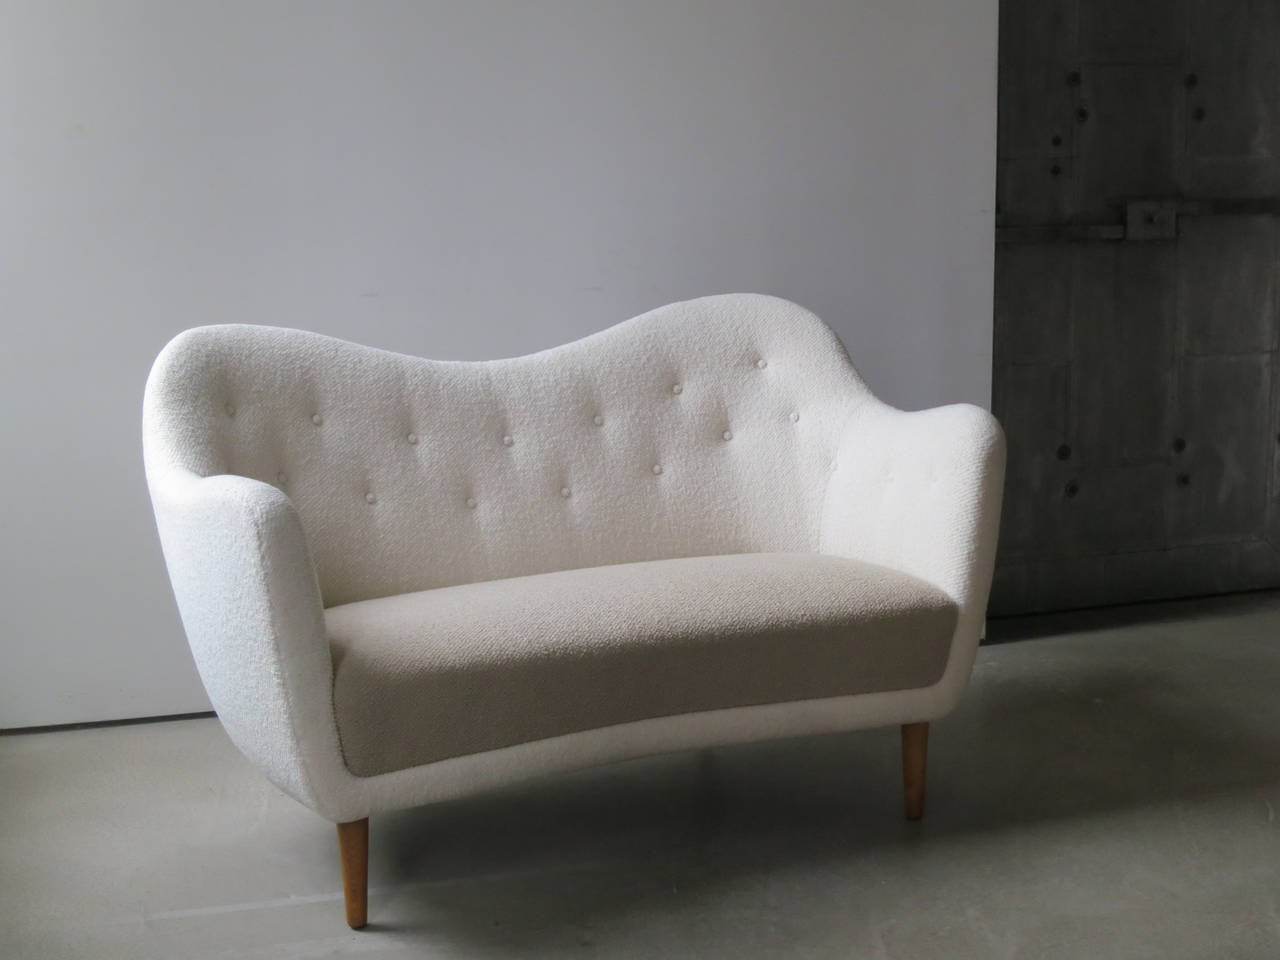 Danish Elegant Curved Sofa with Teak Legs by Finn Juhl Designed in 1948 For Sale